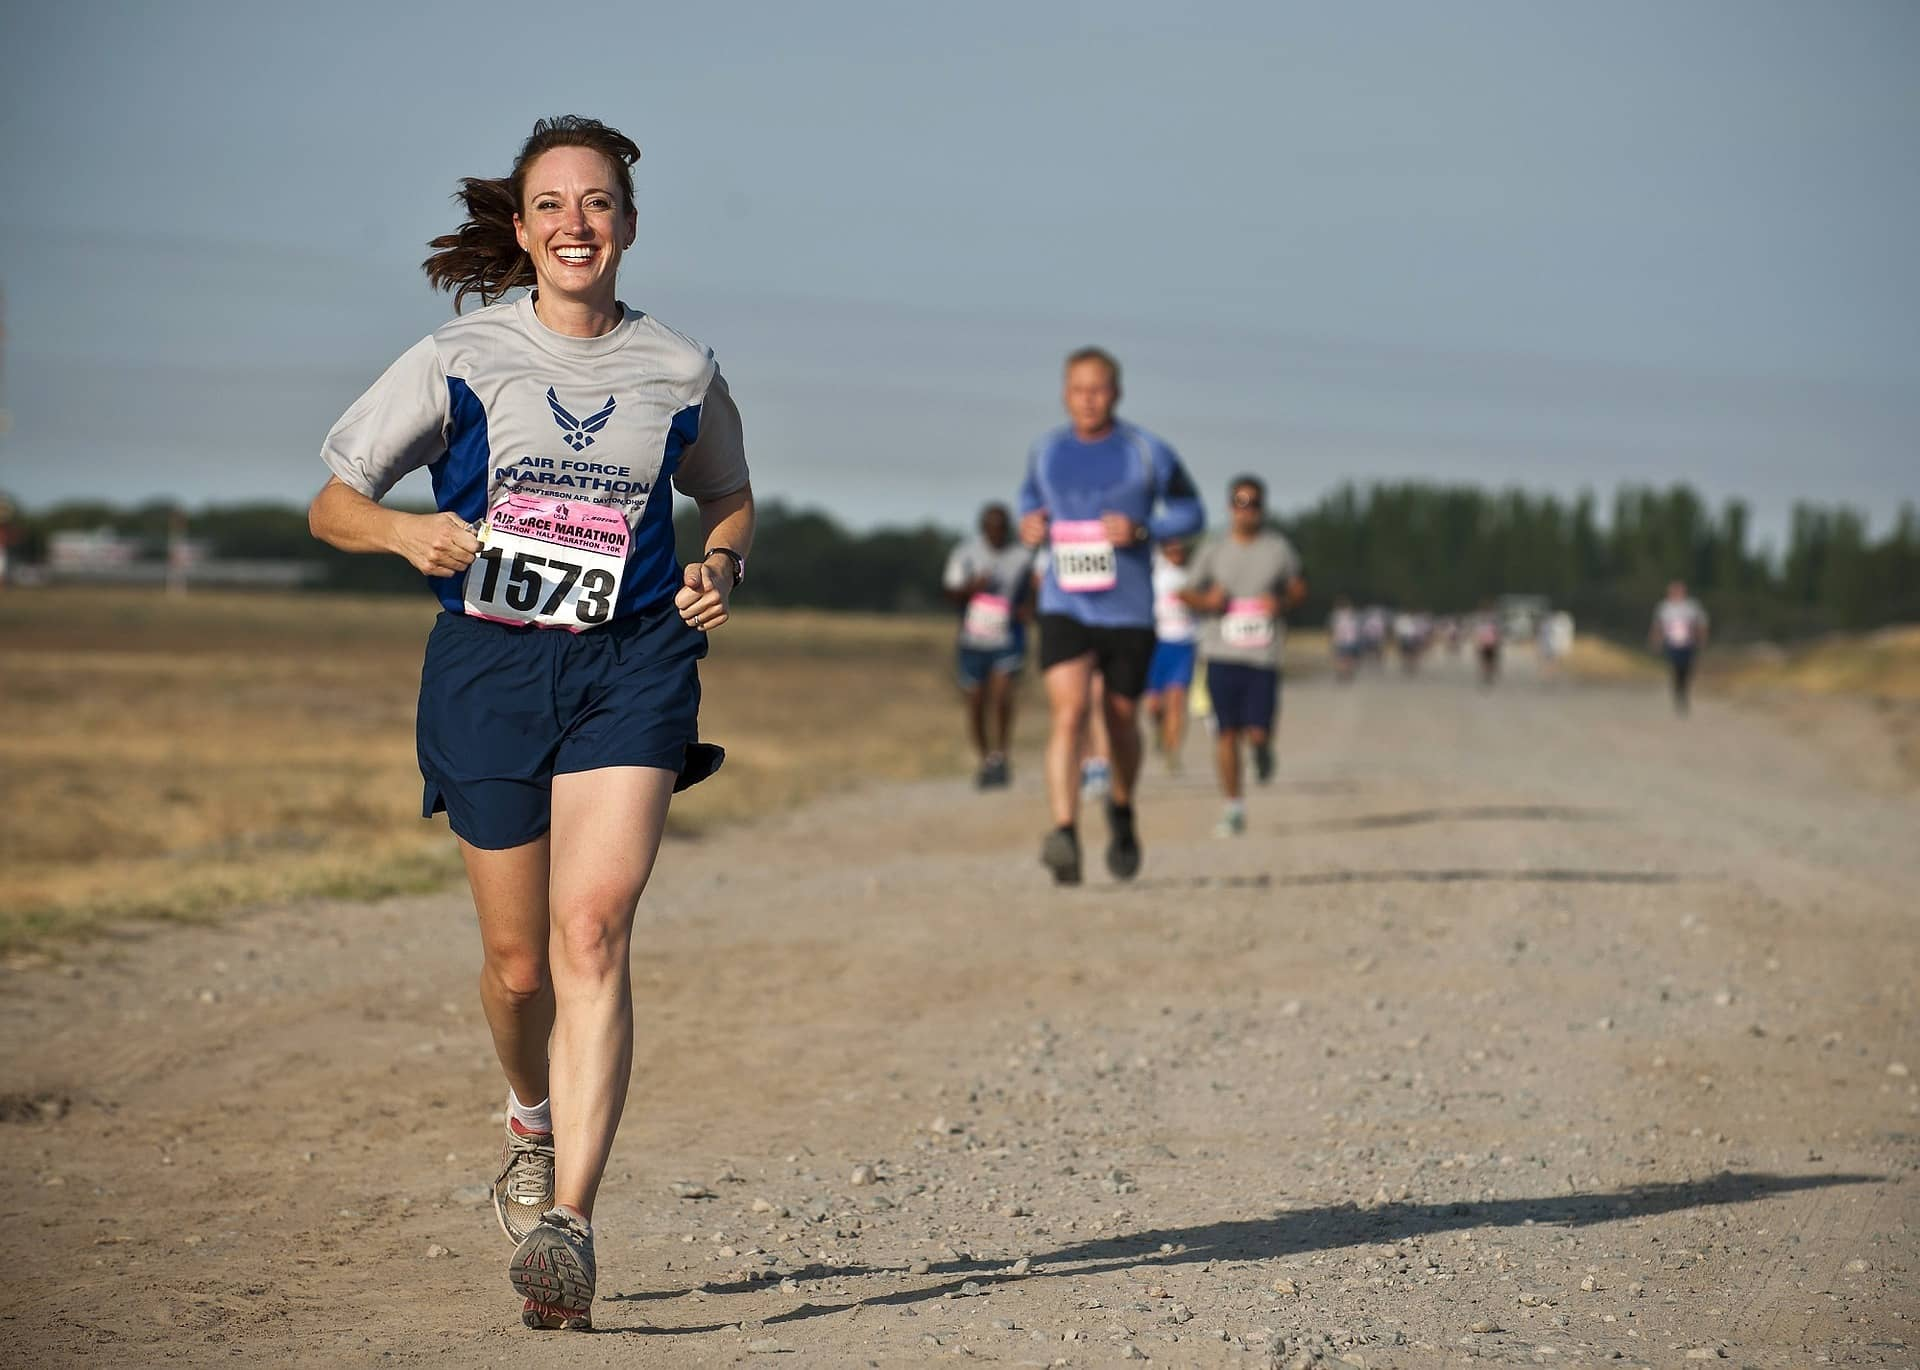 woman running down road, other runners in background